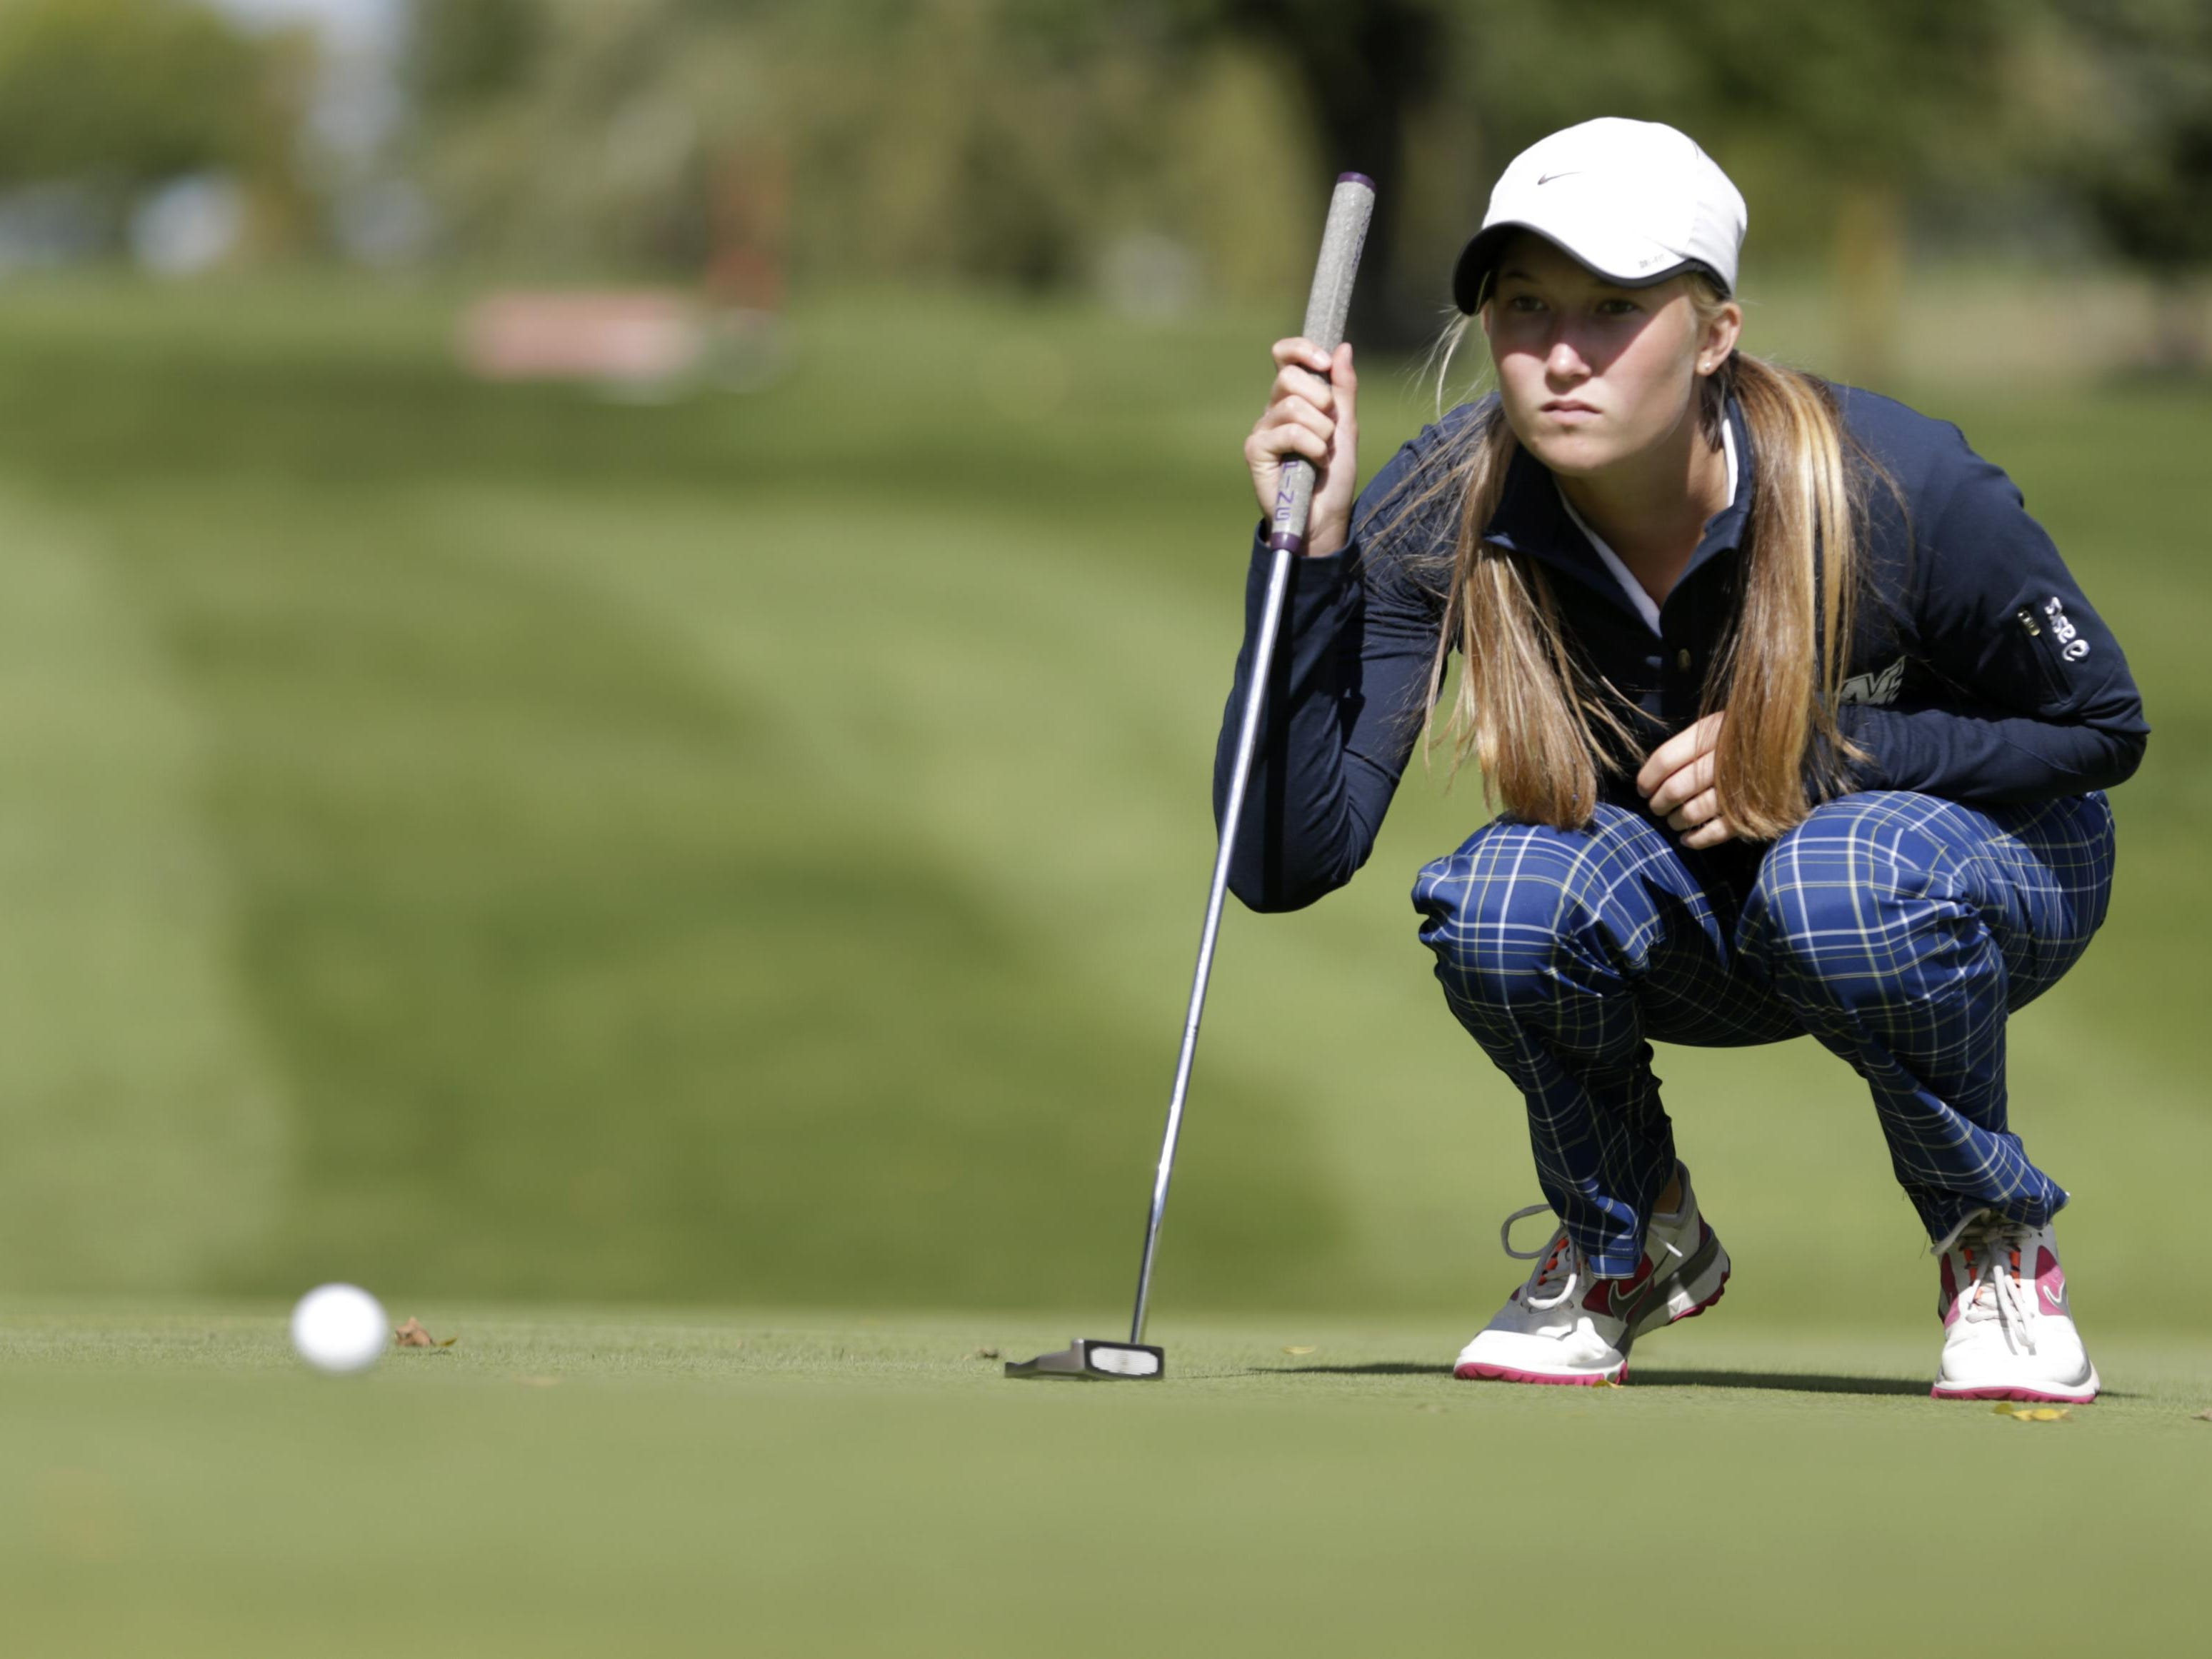 Danny Damiani/Post-Crescent MediaSydney Maule of Appleton North lines up a putt during the Division 1 regional at Countryside Golf Course on Wednesday in Kaukauna. Sydney Maule, of Appleton North High School, lines up a putt during the 2015 Division 1 Regionals at Countryside Golf Course Wednesday, Sept. 30, 2015, in Kaukauna, Wis.Danny Damiani/Post-Crescent Media